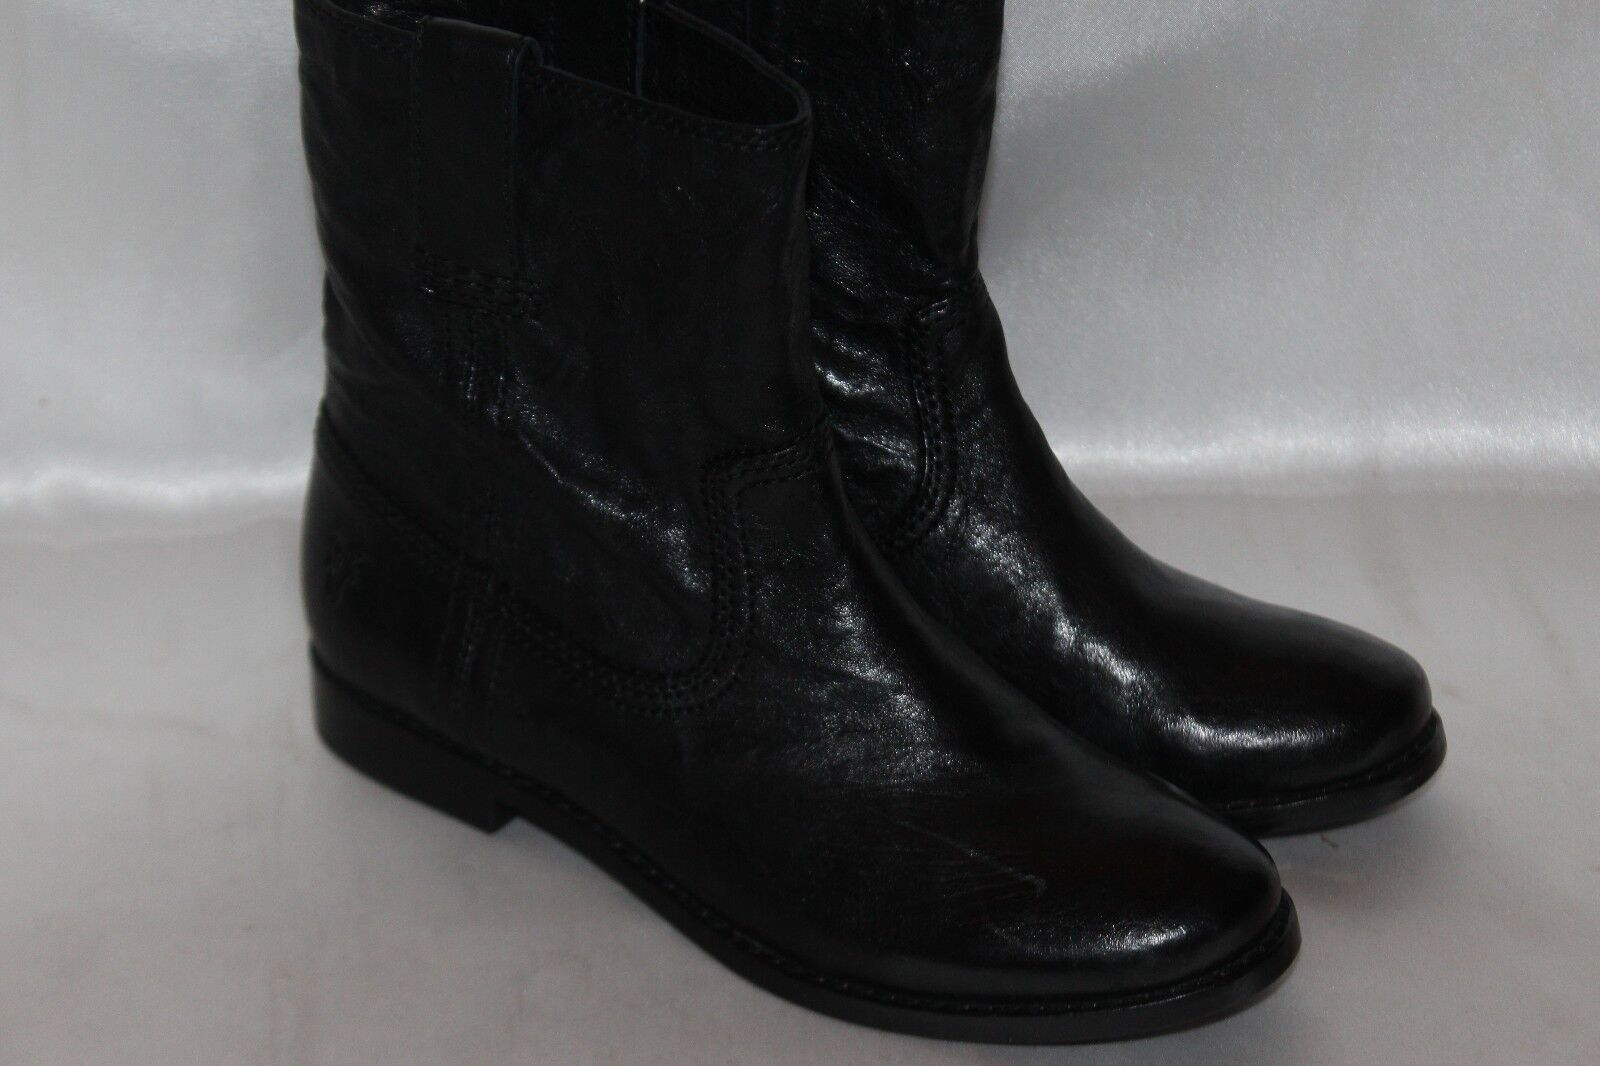 NEW  FRYE Soft Black Leather ANNA SHORTIE Pull On Ankle Boots Sz 6